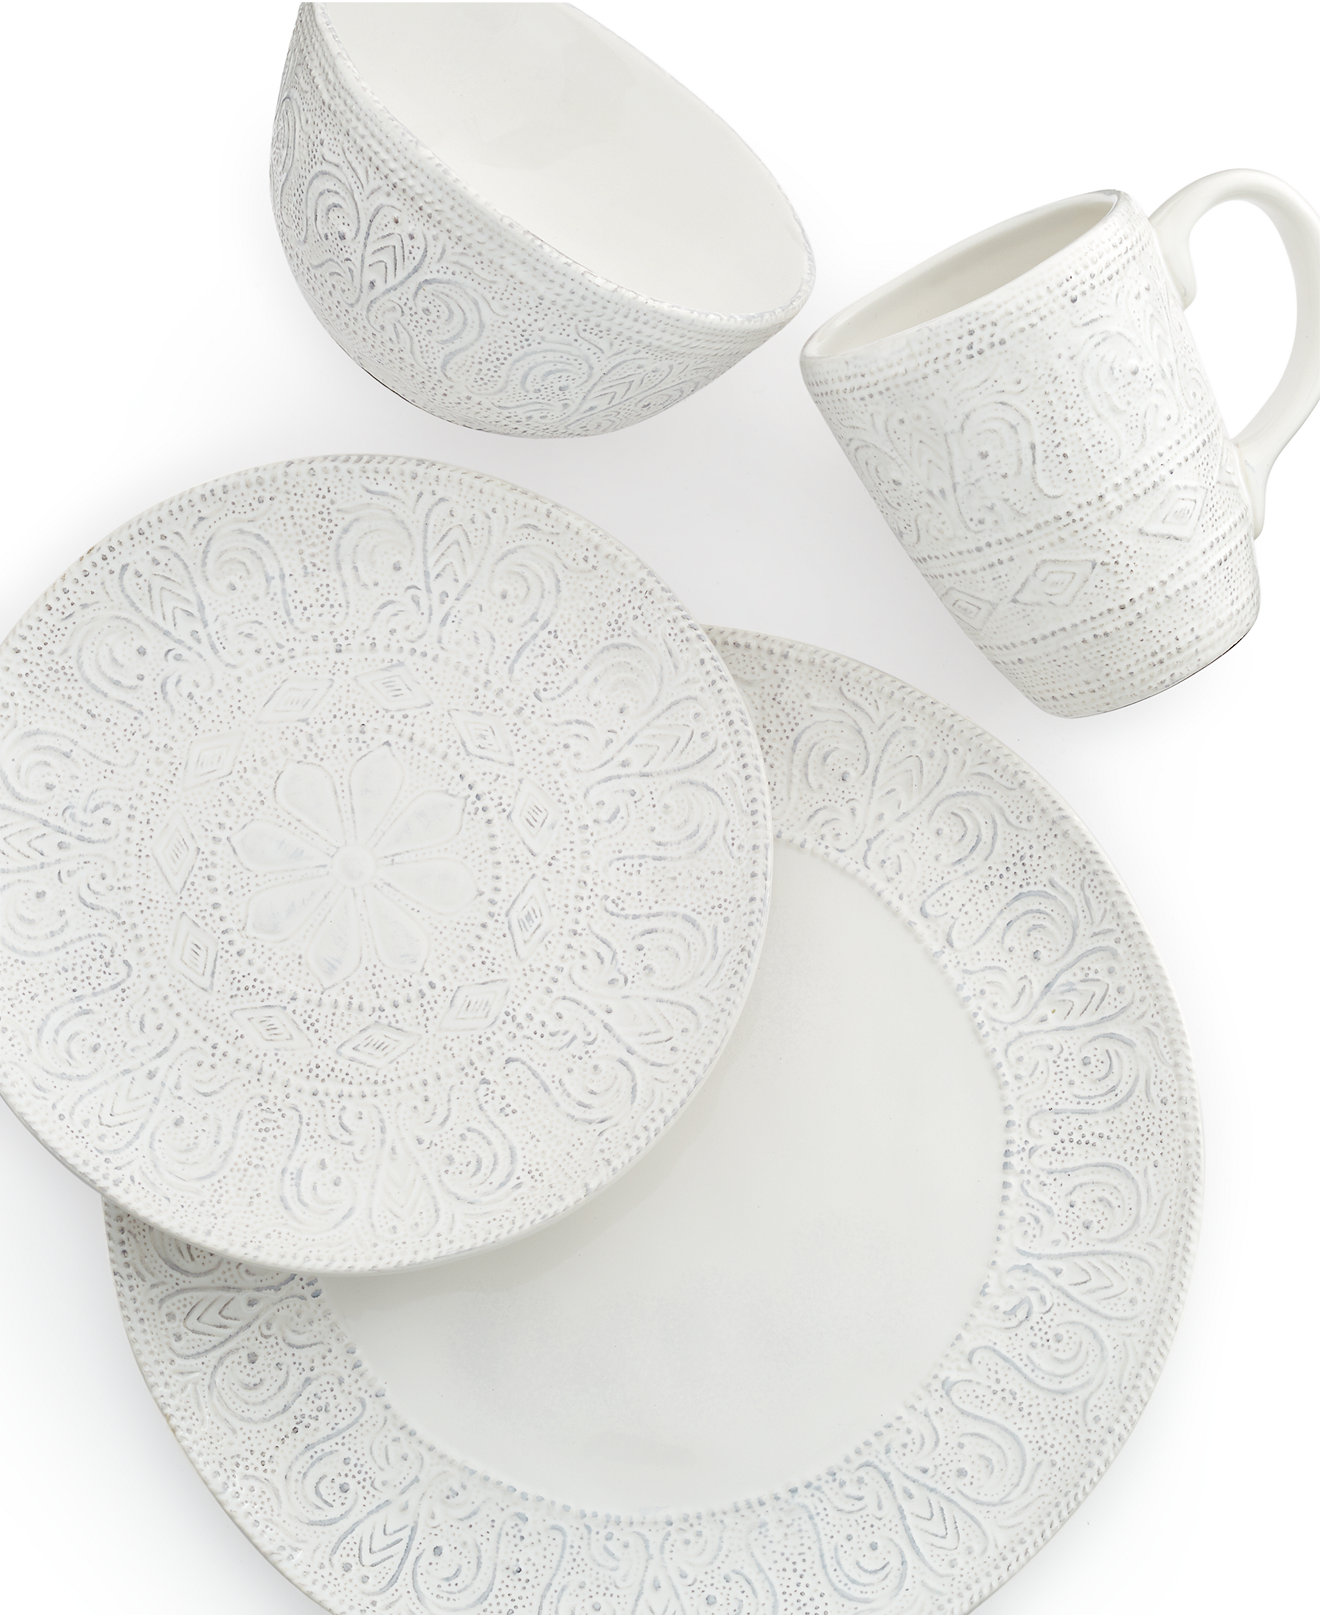 Maison Versailles Blanc Colette 4-Piece Place Setting - Dinnerware - Dining & Entertaining - Macy's